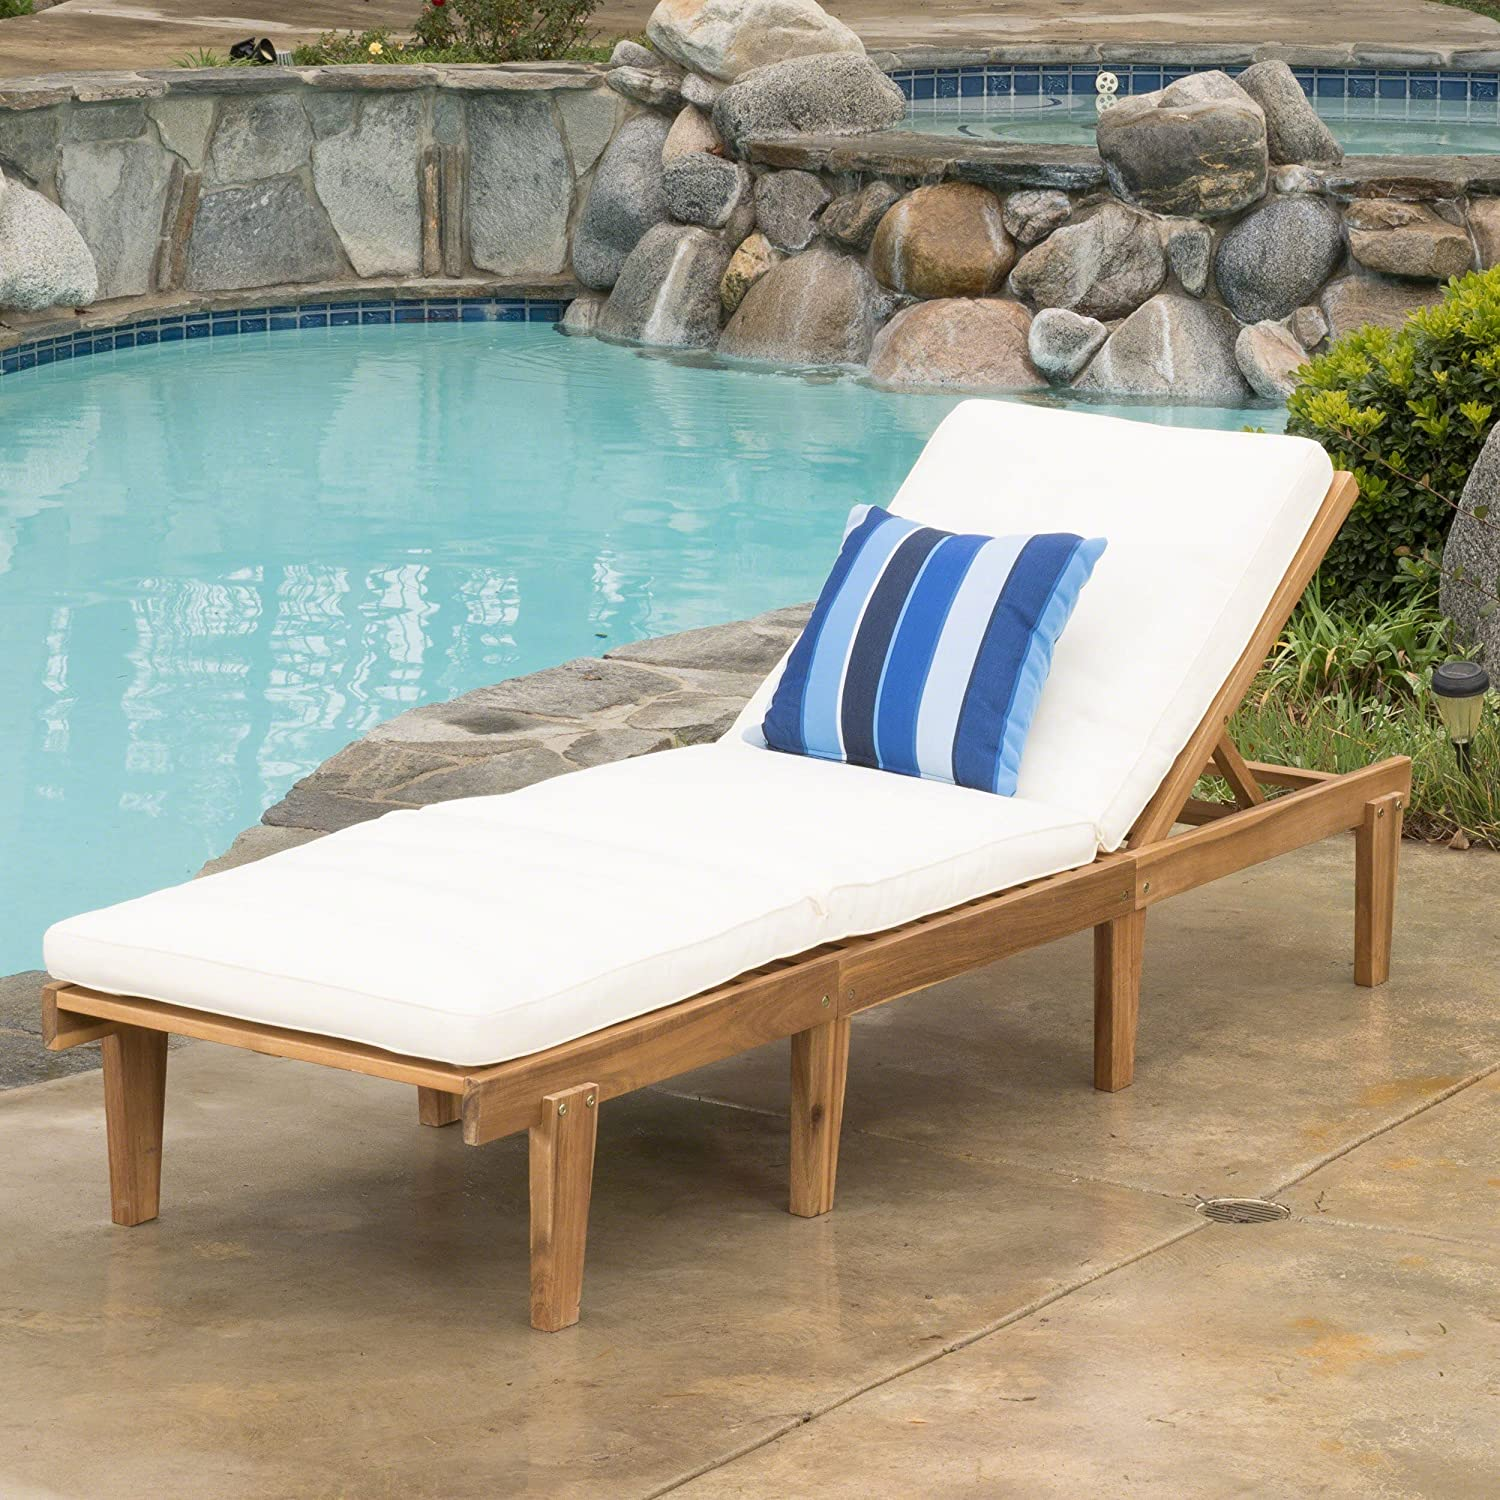 Christopher Knight Home Ariana Acacia Wood Chaise Lounge with Cushion, Teak Finish